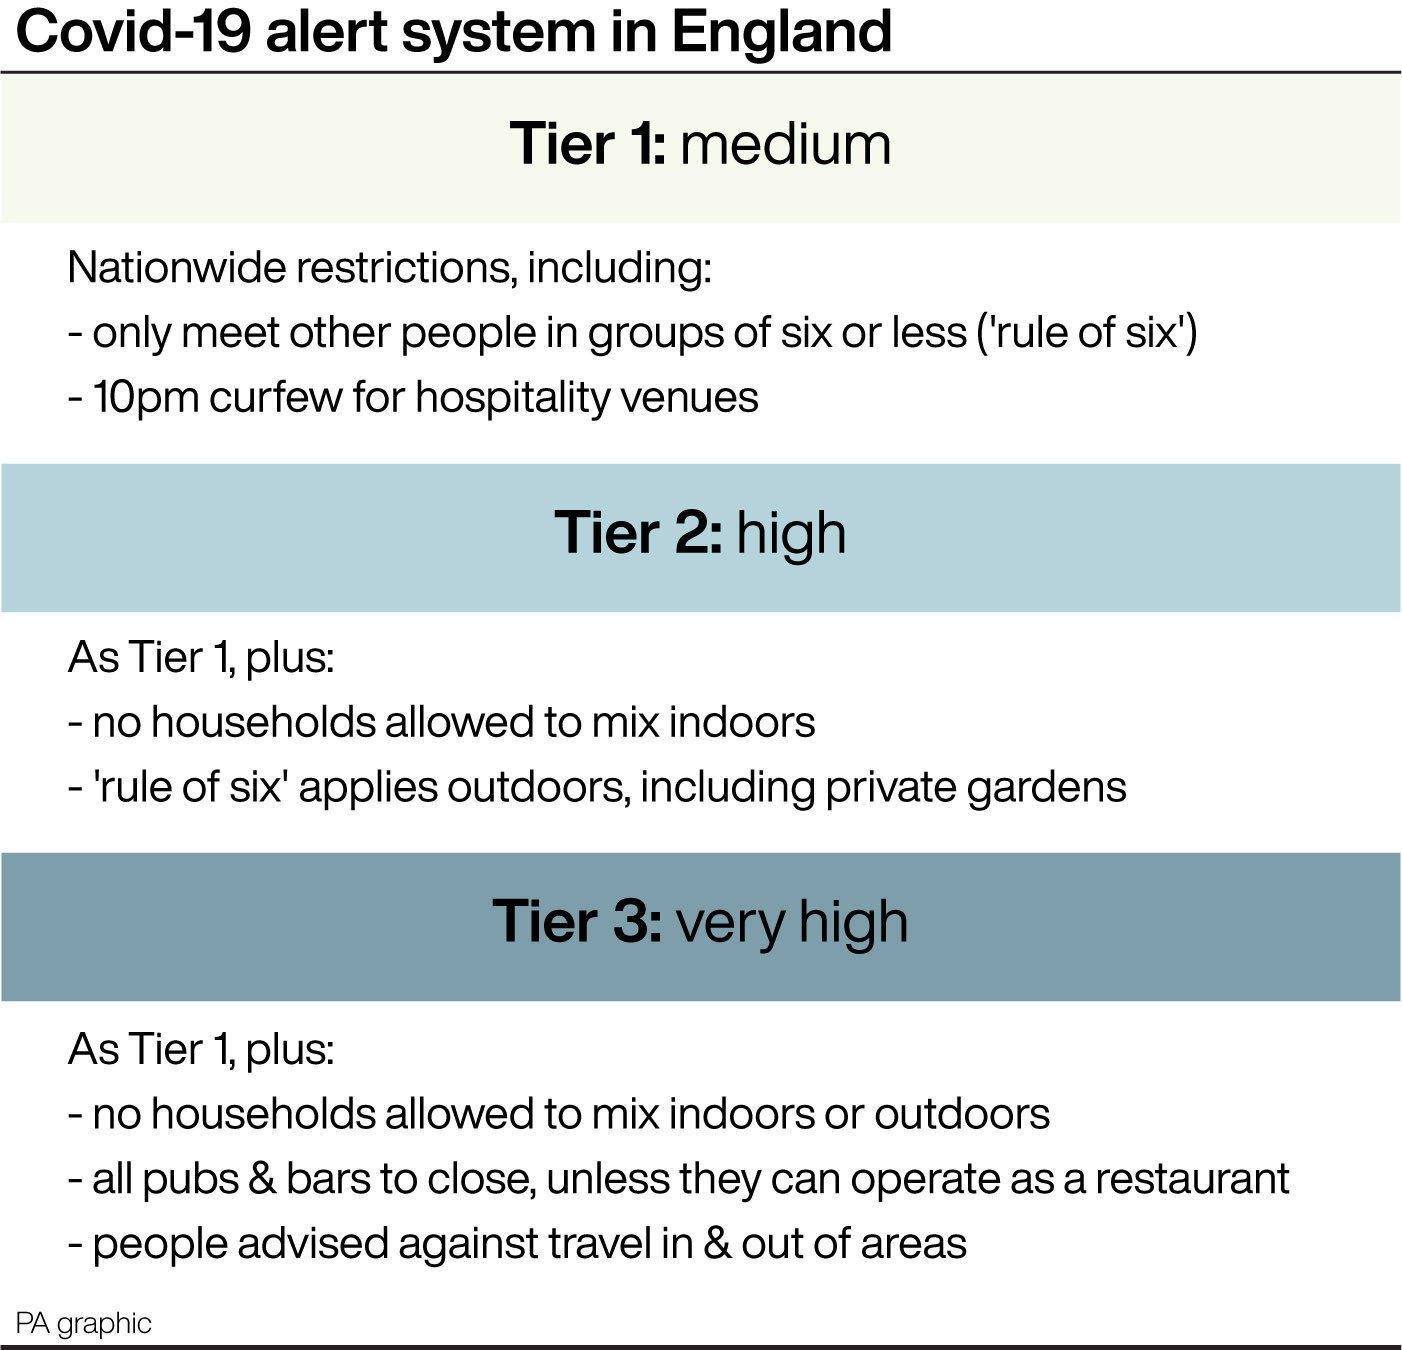 Merseyside leaders brand Covid-19 tier system a 'shambles' over inconsistencies